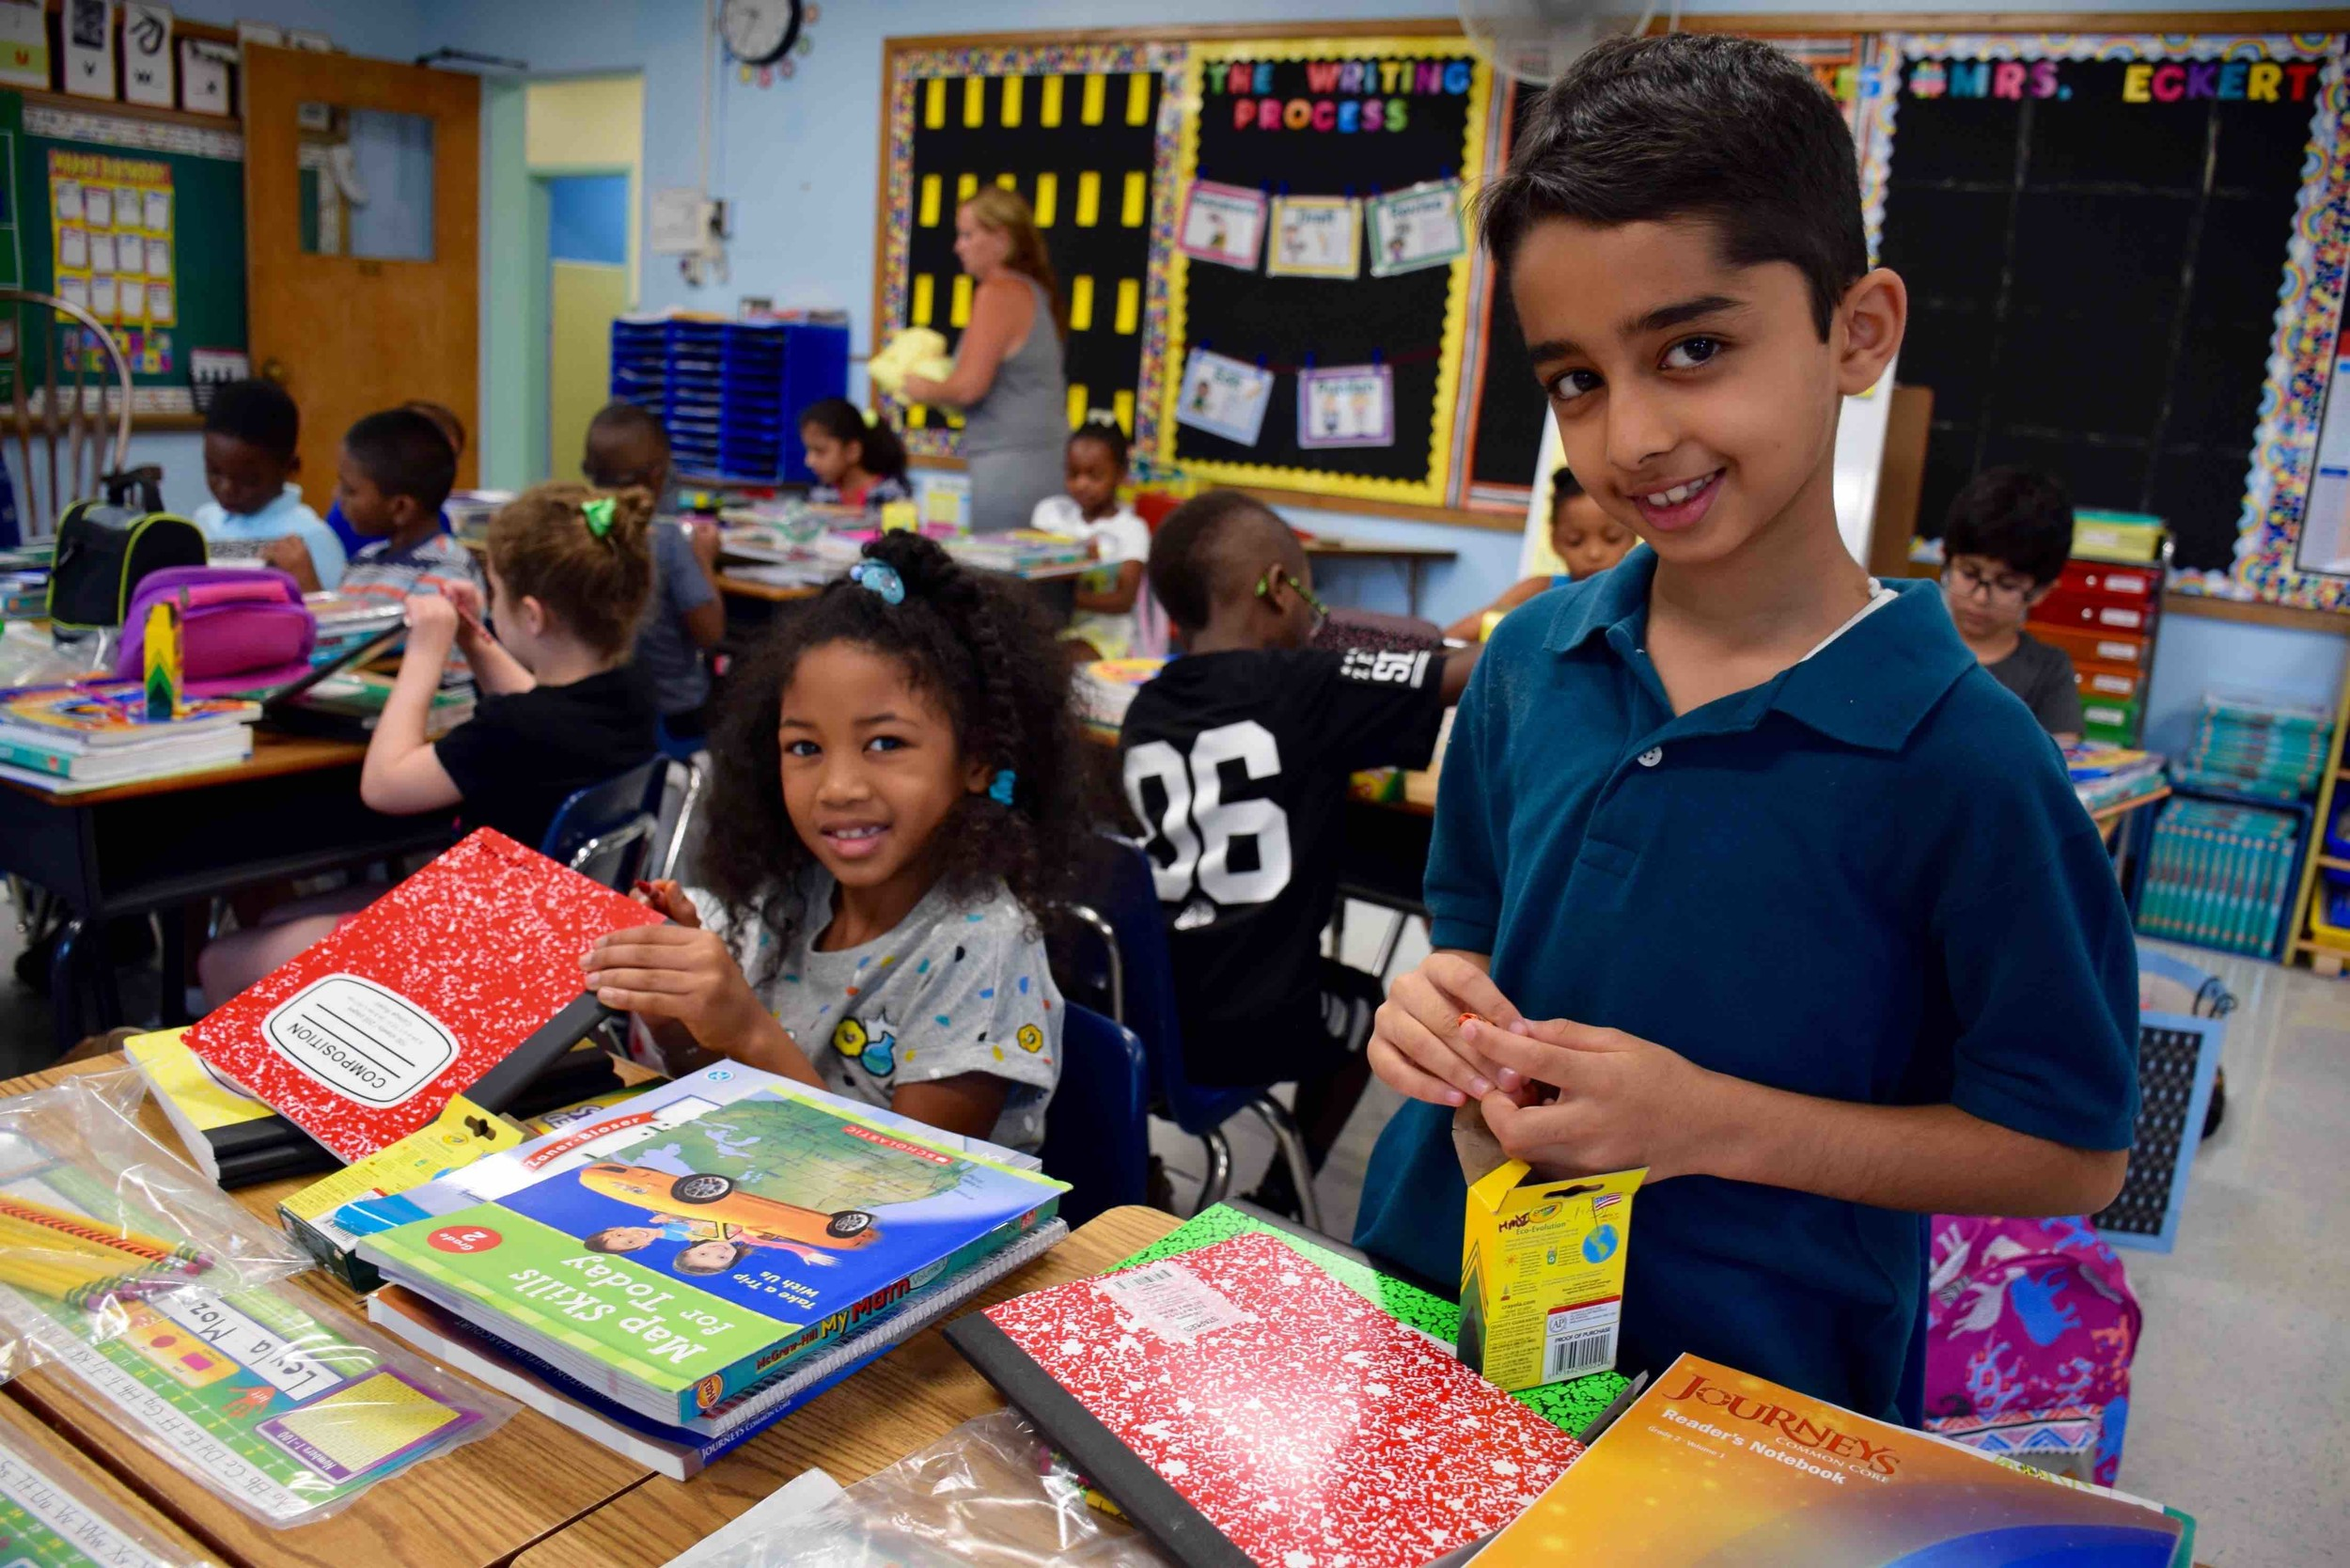 Forest Road students Hadi Sajjad, right, and Leyla Moze organized their school supplies during their first day of second grade.